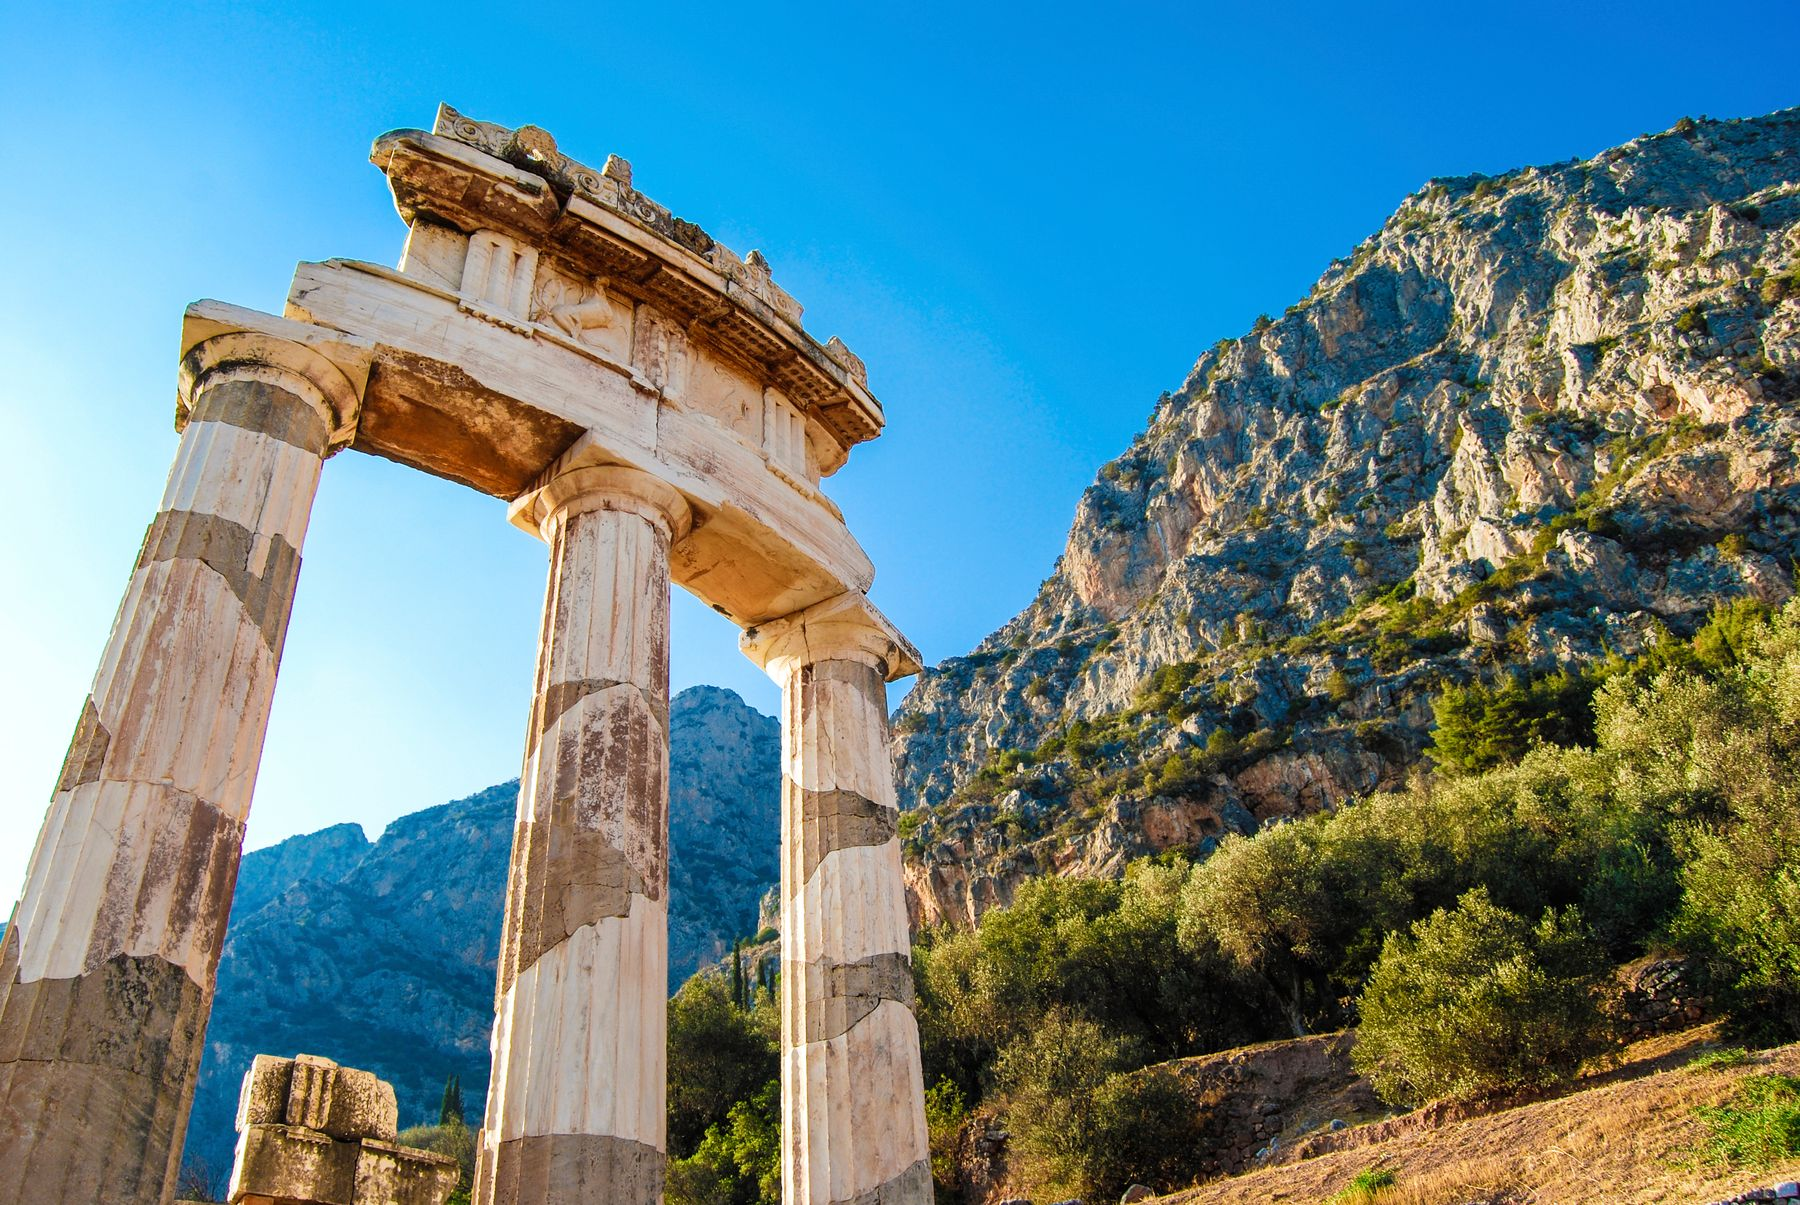 Delphi, a town on Mount Parnassus in the south of mainland Greece